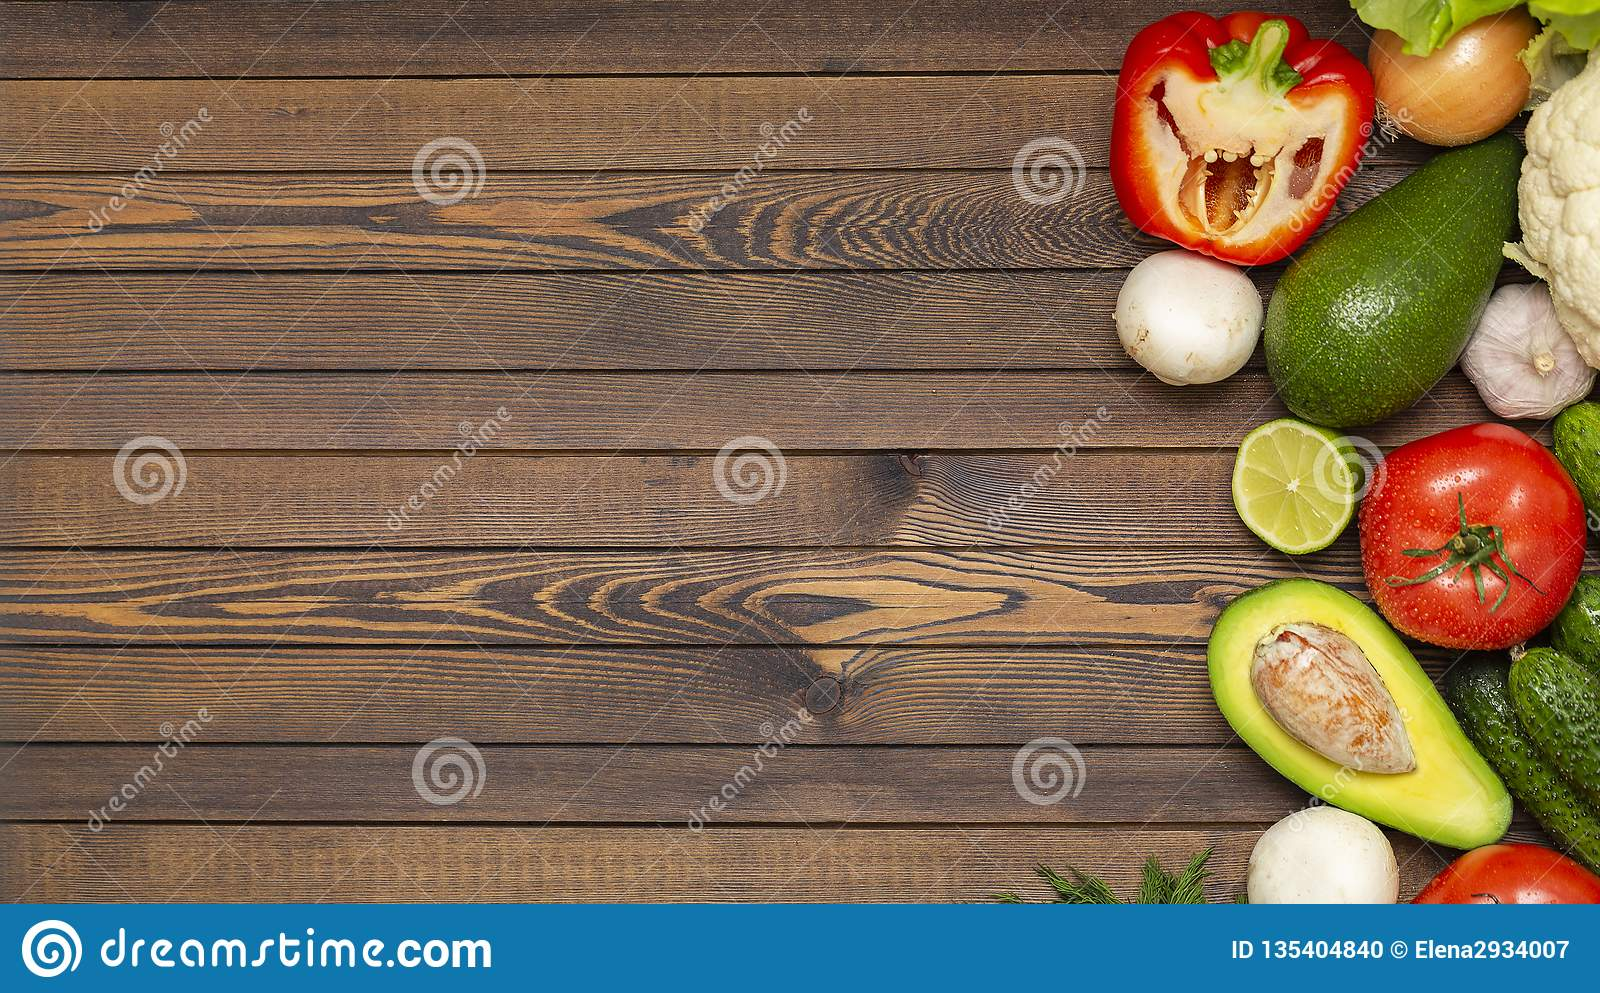 Flat lay composition with assortment of fresh vegetables on wooden table. Fresh farmers garden vegetables on wooden table.